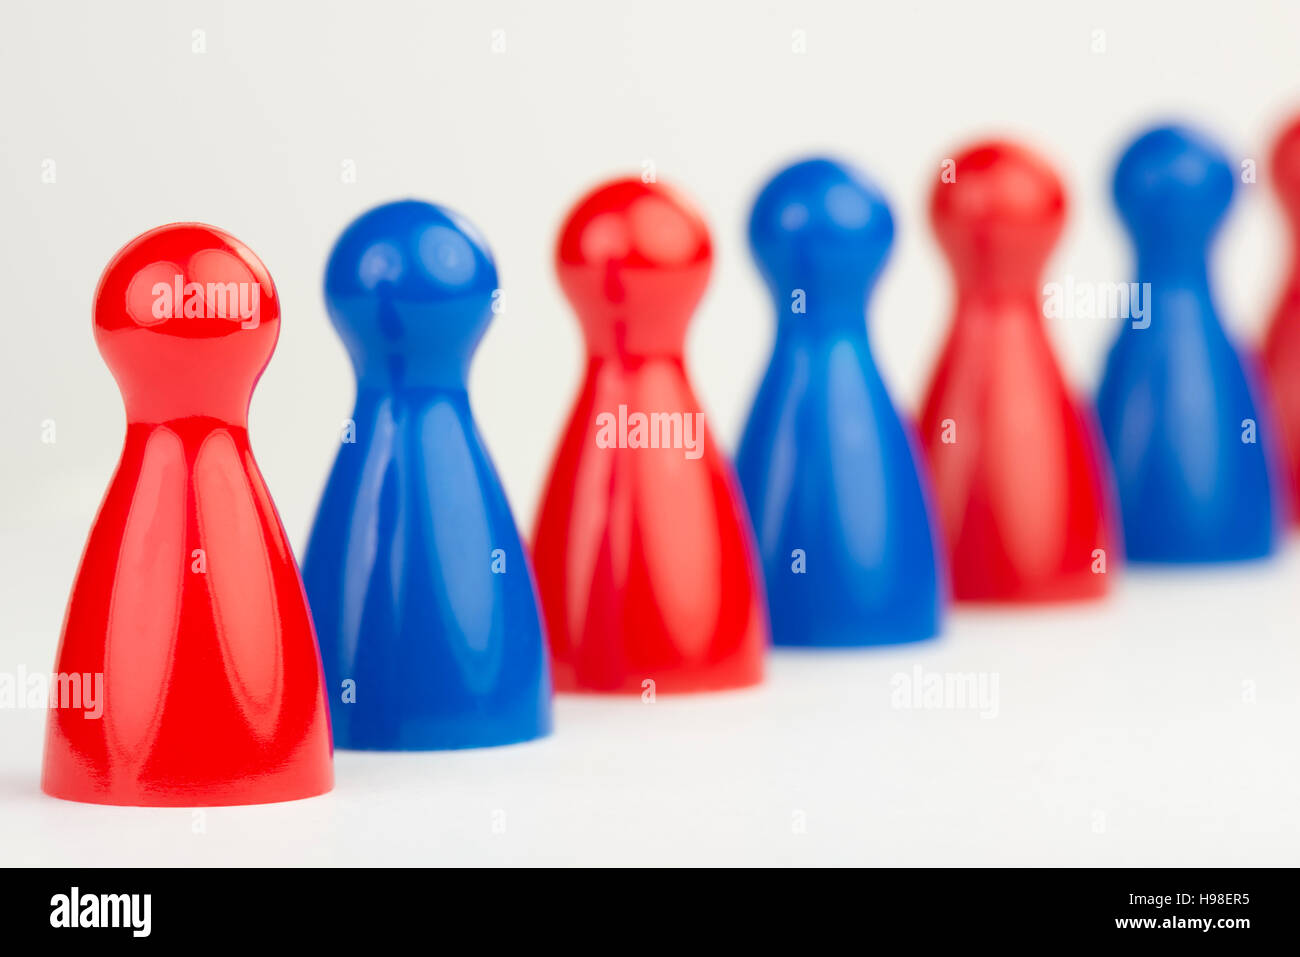 Conceptual game pawns that visualize the concept chain cooperation - Stock Image